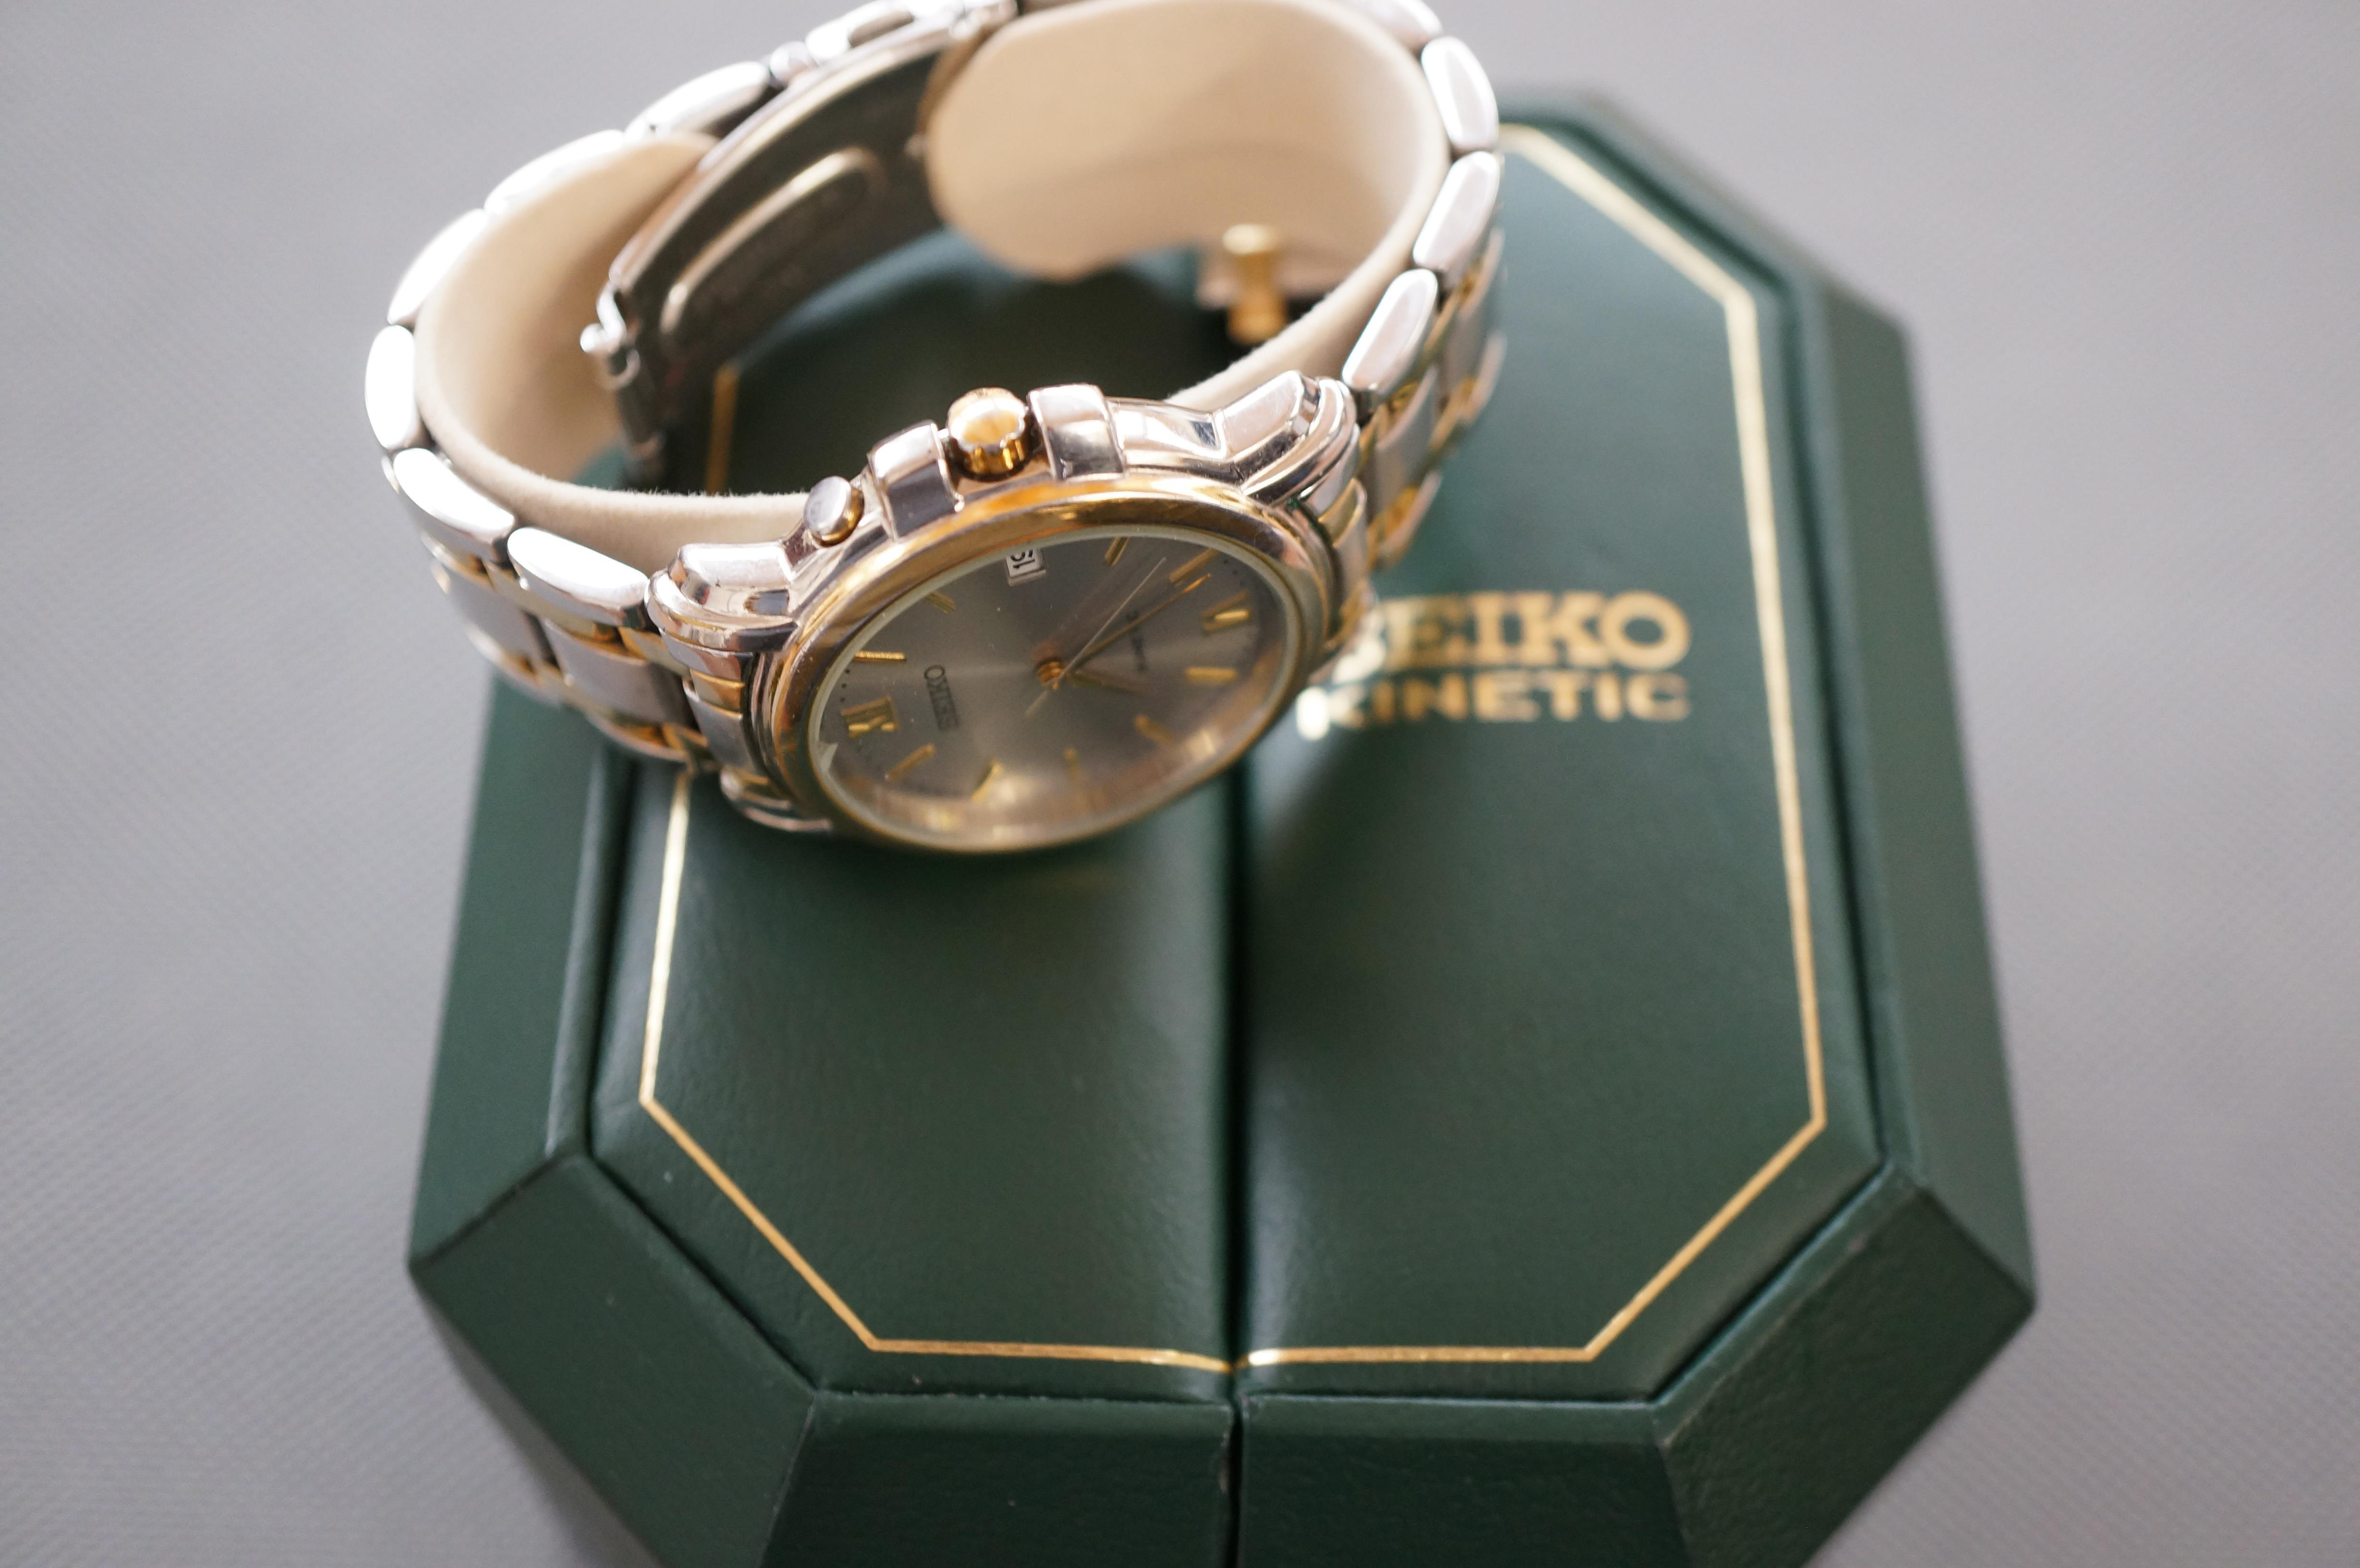 Gents Seiko Kinetic Wristwatch in Original Fitted - Image 2 of 2